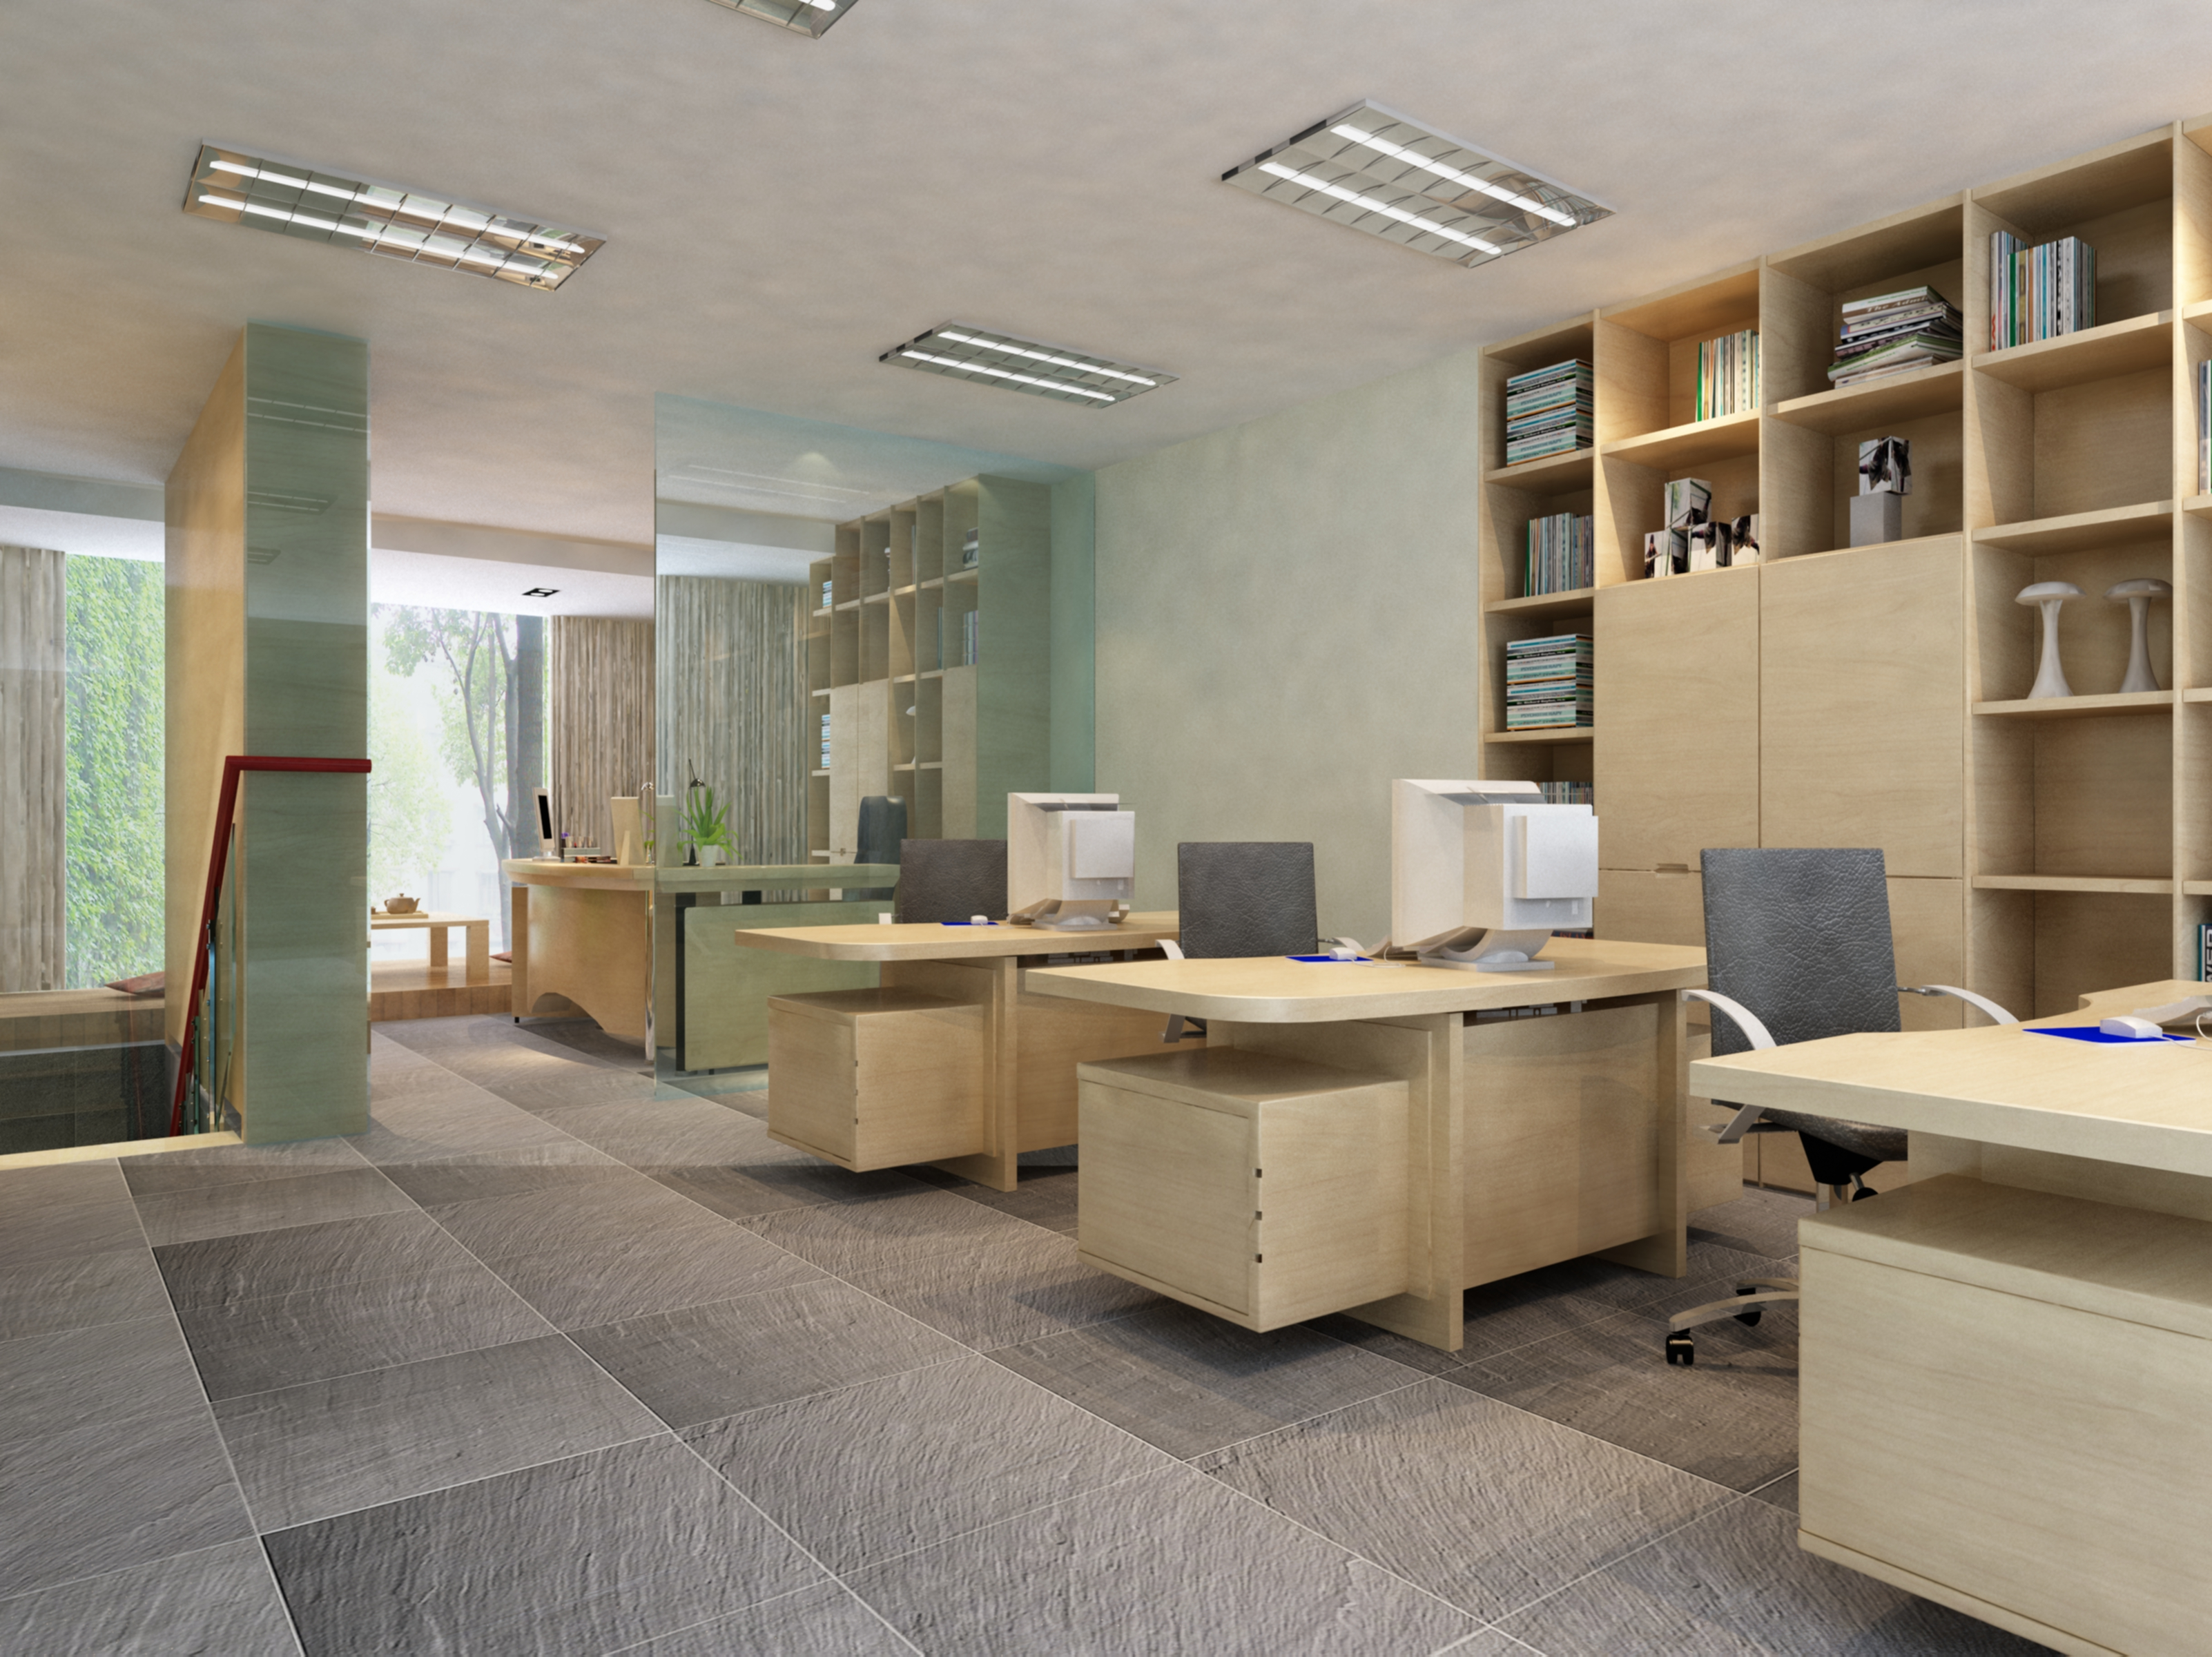 Call The Office People In Charleston To Get The Best Used Office Furniture.  843 769 7774